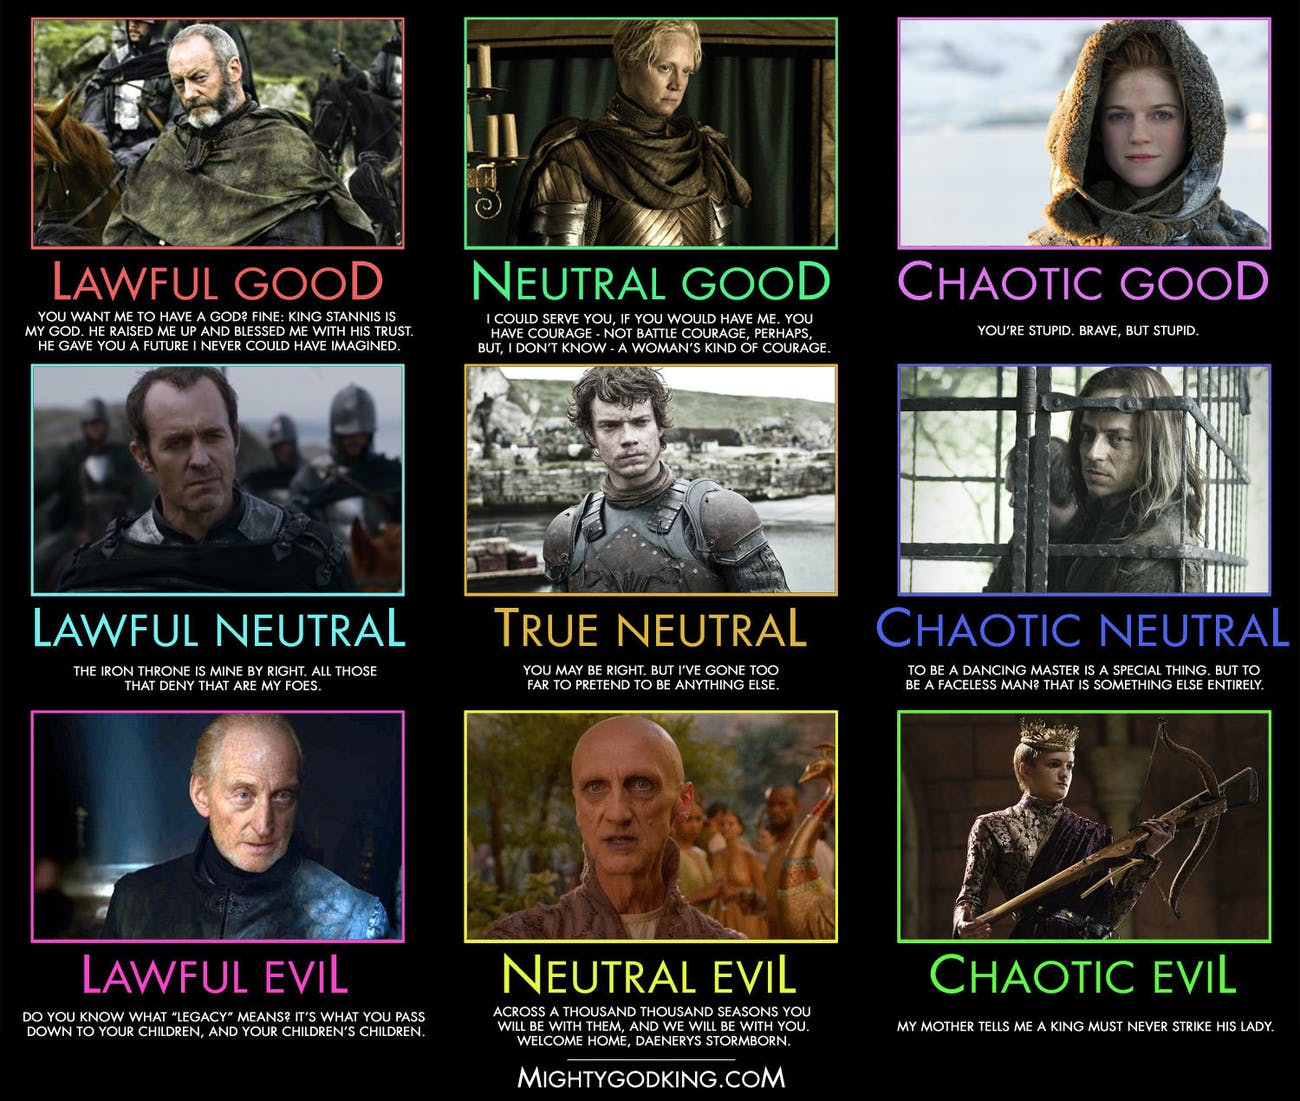 game of thrones moral alignment chart dungeons and dragons